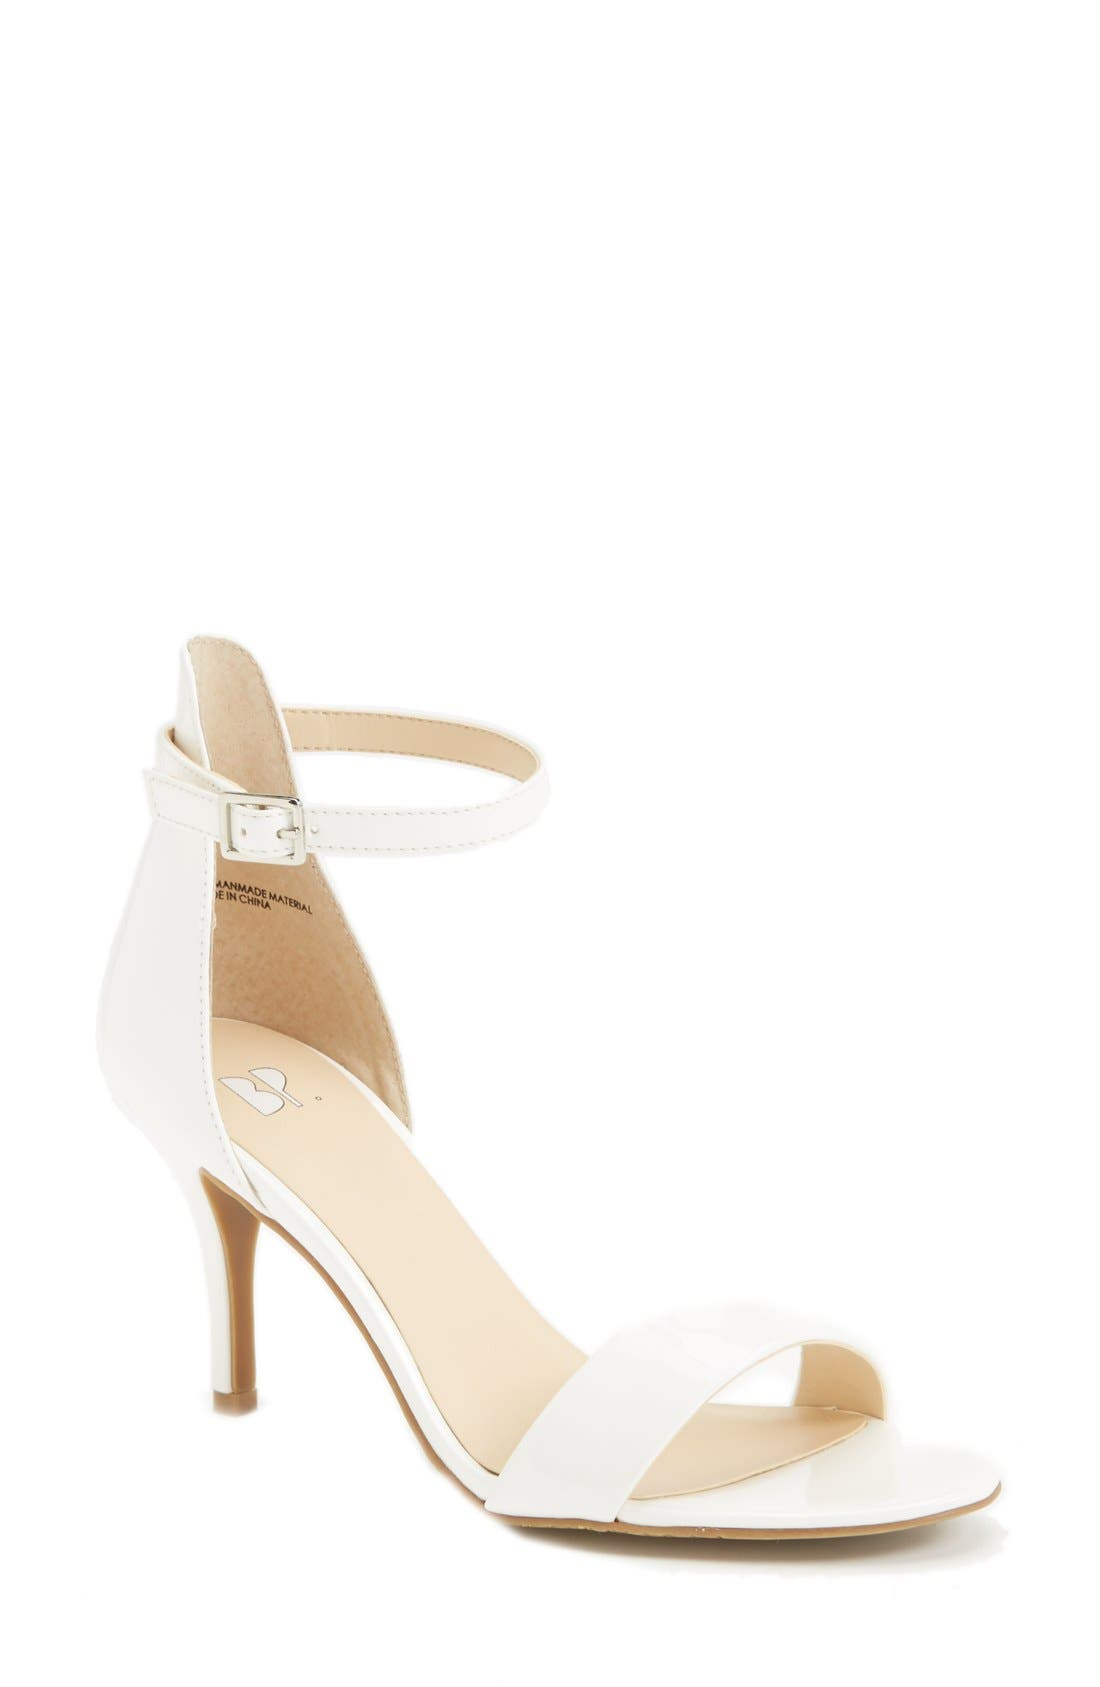 'Luminate' Open Toe Dress Sandal,                             Main thumbnail 25, color,